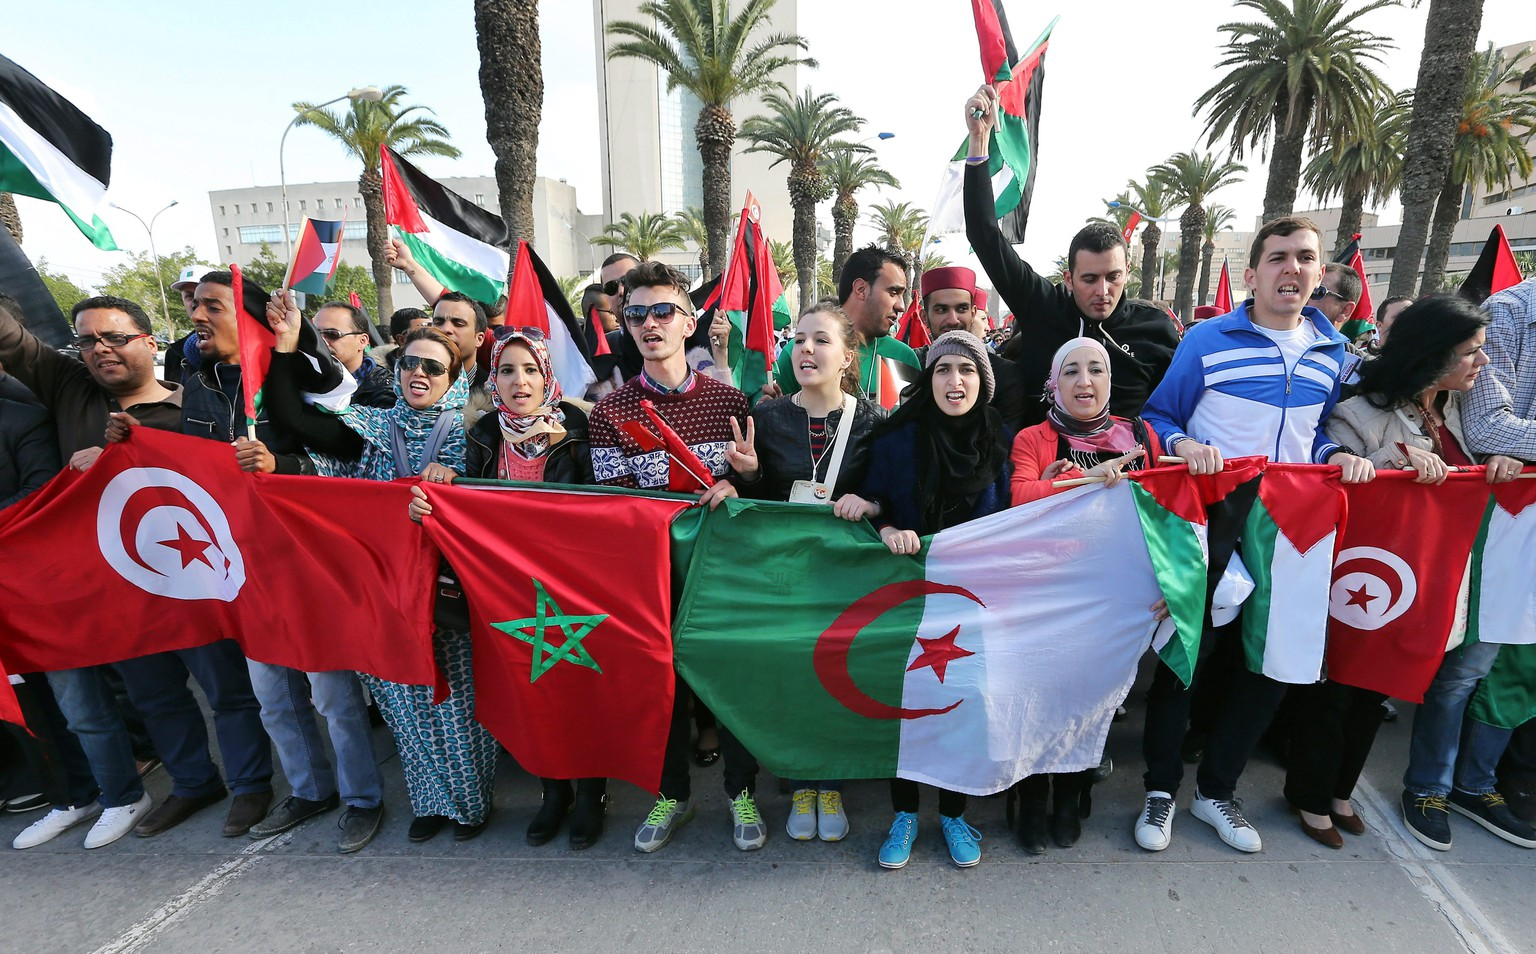 epa04683867 Participants at the 14th World Social Forum (WSF) hold (L-R) the flags of Tunisia, Morocco, Algerian, and Palestine during the closing of the forum's events, Tunis, Tunisia, 28 March 2014. The WSF opened in Tunisia on 24 March, with trade union members and political activists participating in the five-day events, concluding with events on the last day in solidarity with Palestinians.  EPA/MOHAMED MESSARA